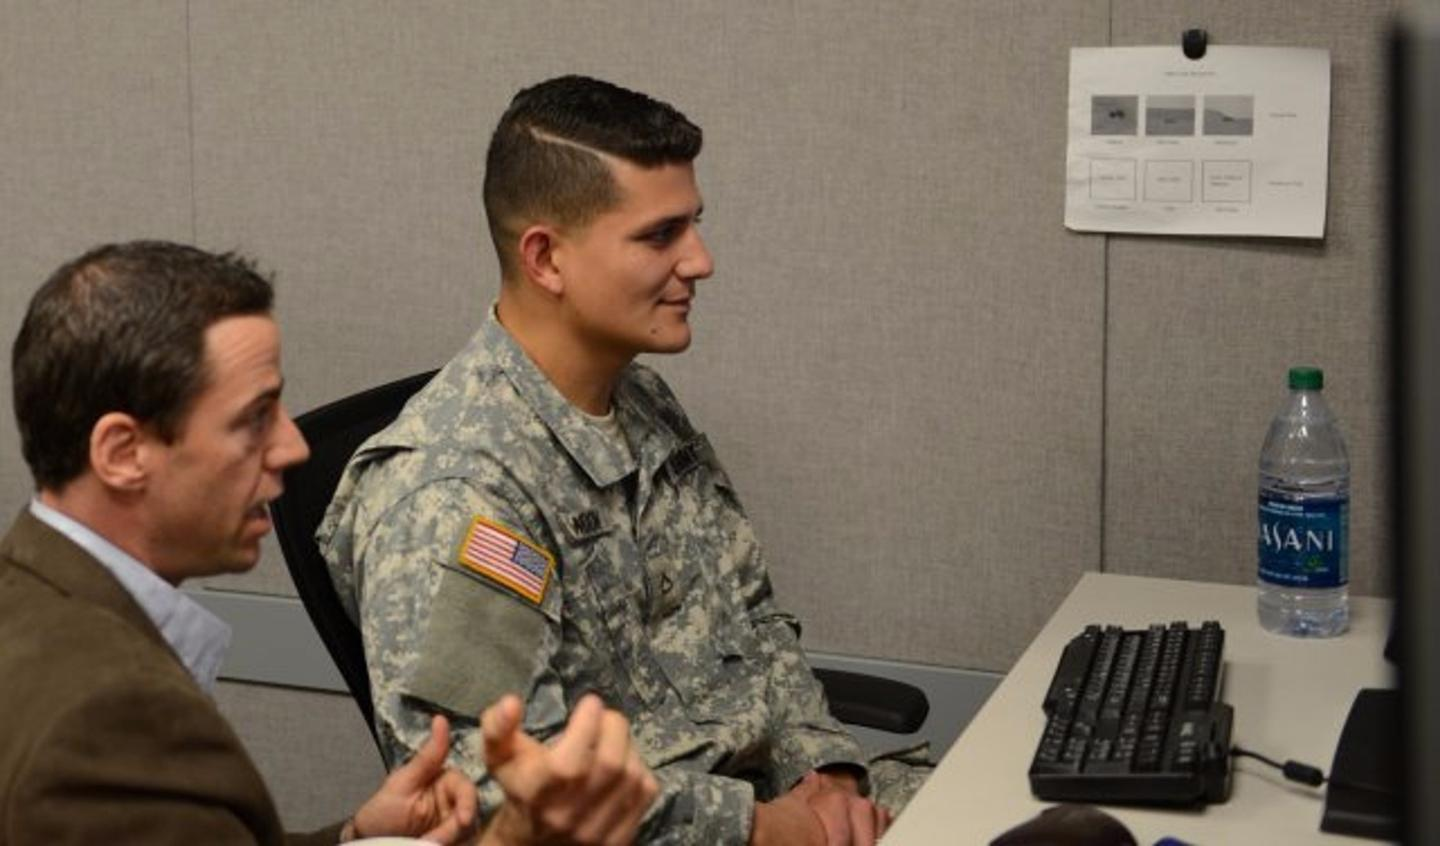 Anthony Ries instructs Pfc. Kenneth Blandon on how to play a computer game that uses eye-tracking technology